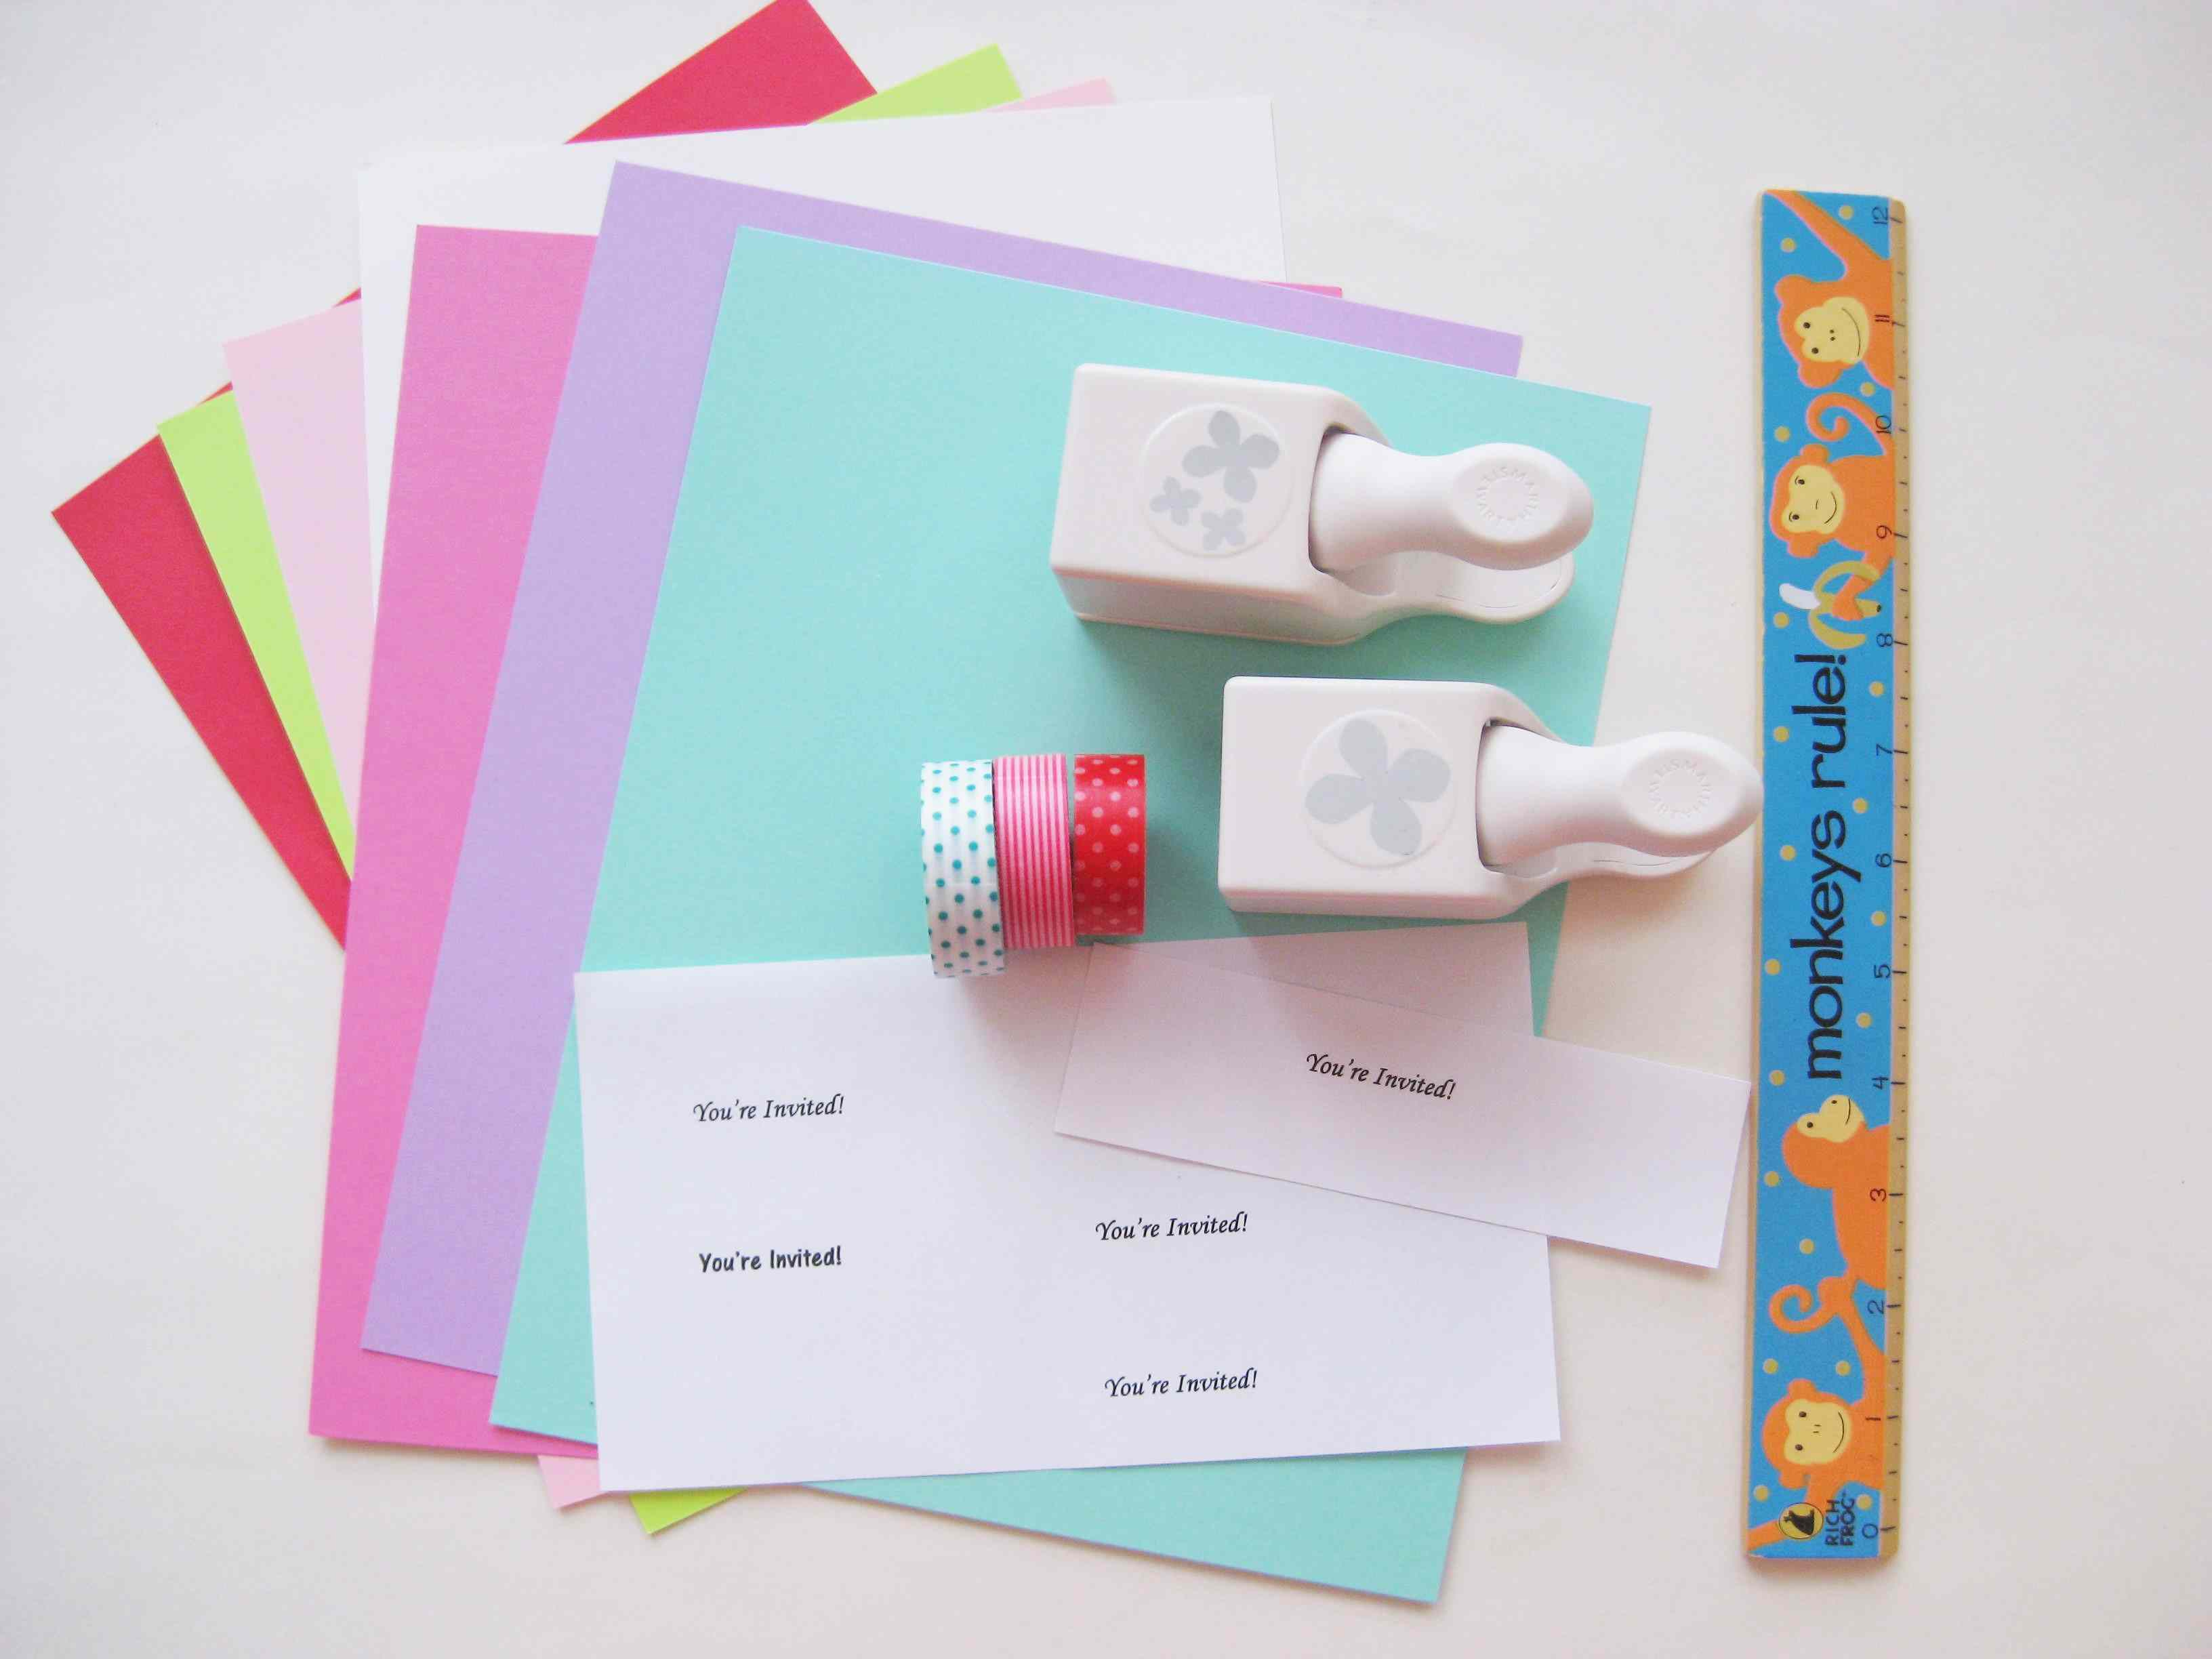 Assemble The Materials To Make Party Invitations